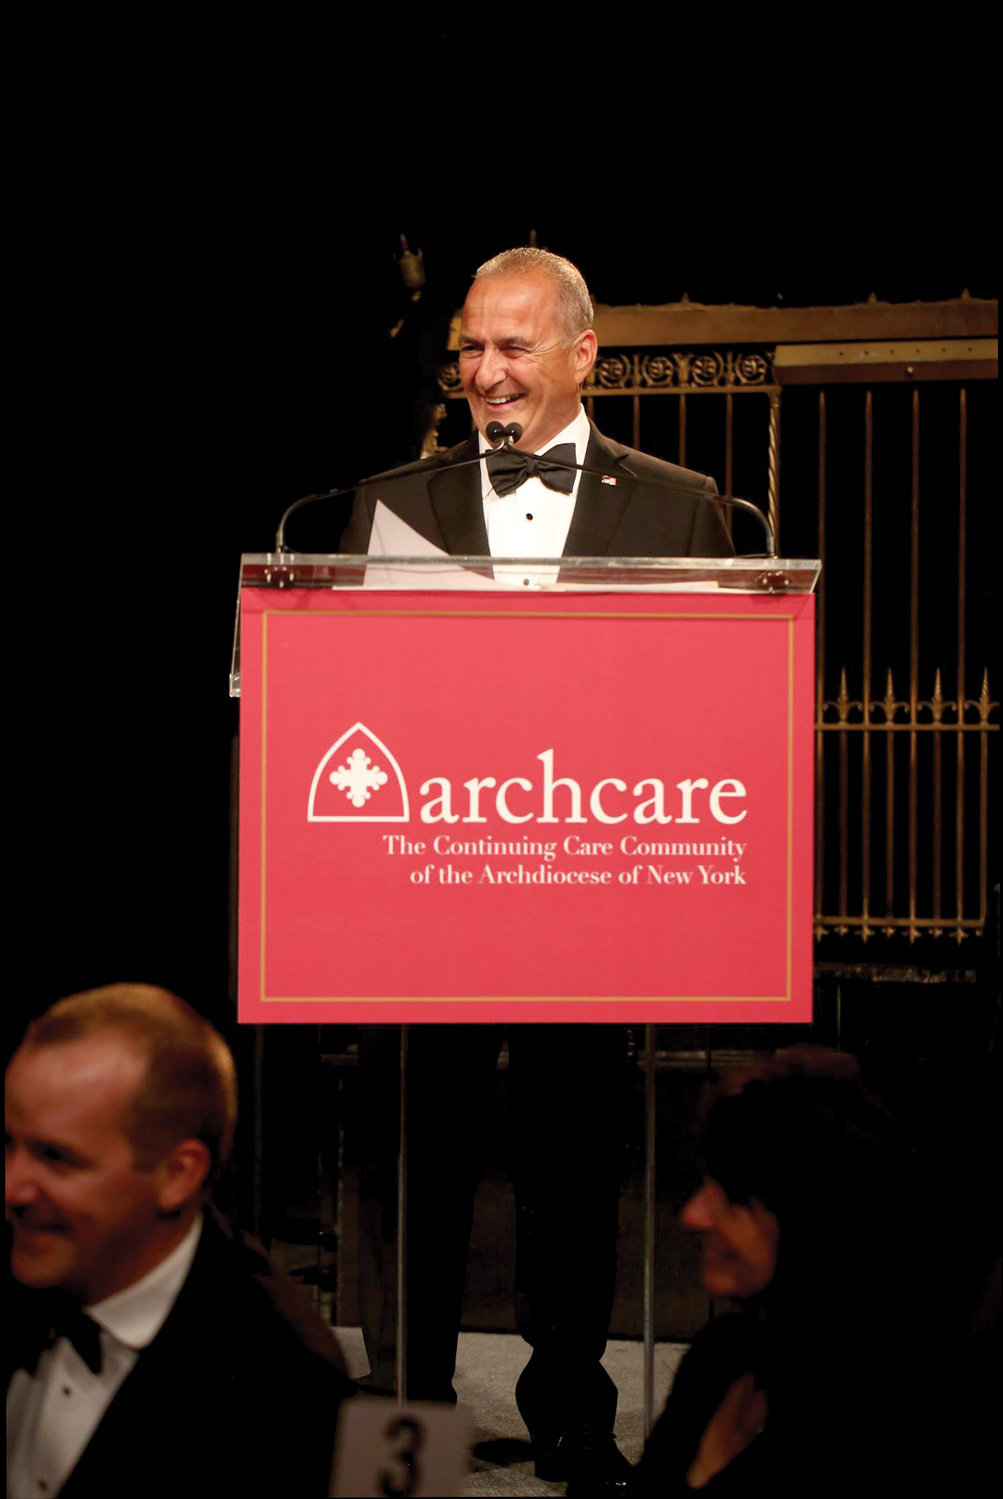 Anthony Colao Sr., president of Flag Waterproofing & Restoration Co., received the ArchCare Partnership Award.